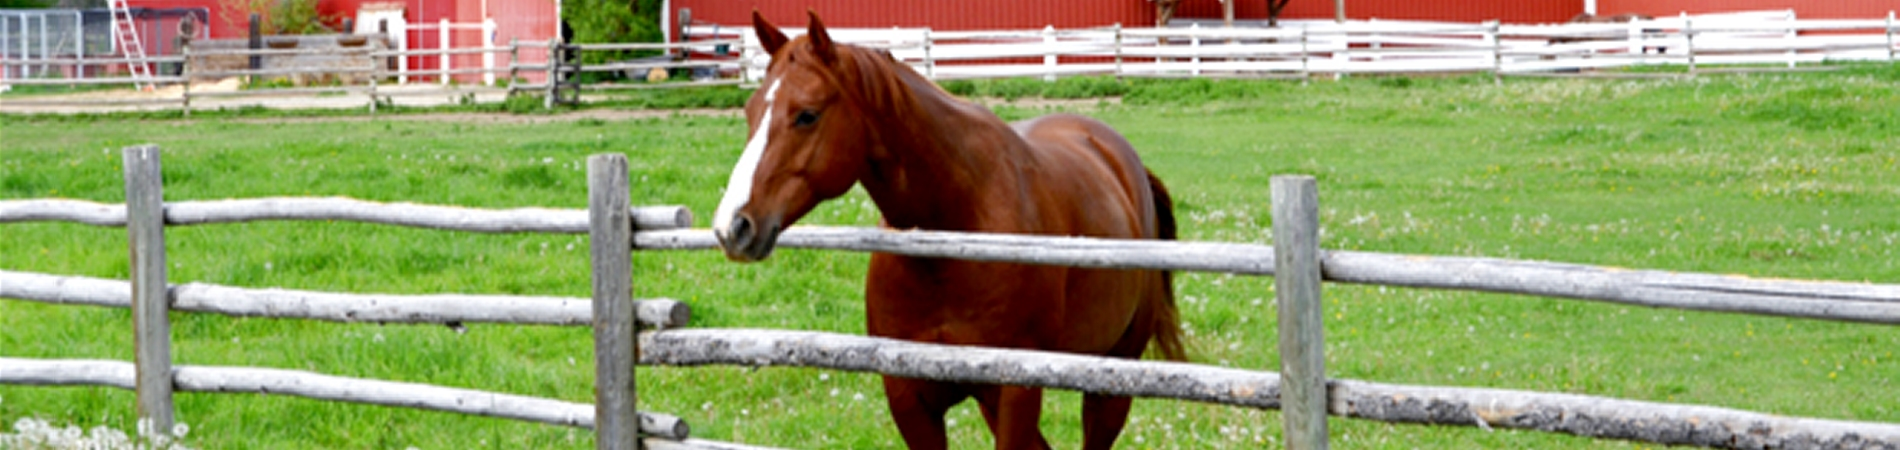 Horsing Around In Va Charlottesville Horse Farms How To Build A Barn Hometips The Area Is Rich Activities For Enthusiast You Could Say That What We Do Best